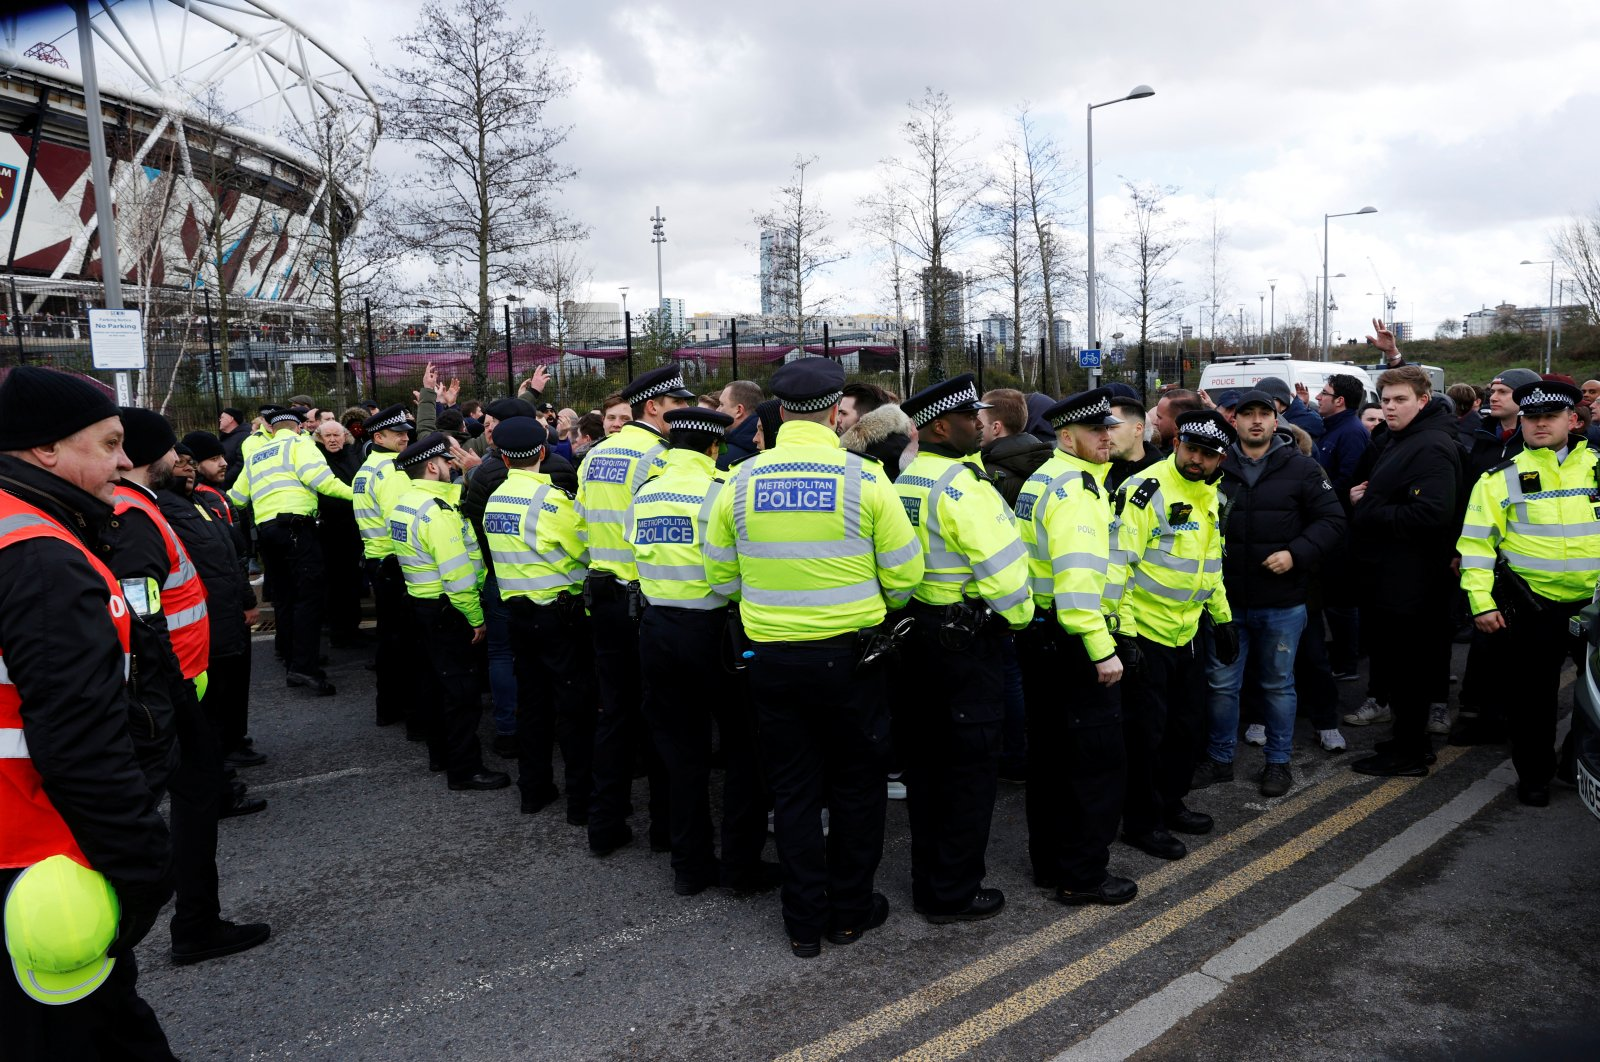 A general view of police officers outside the stadium, London, Feb. 29, 2020. (REUTERS Photo)